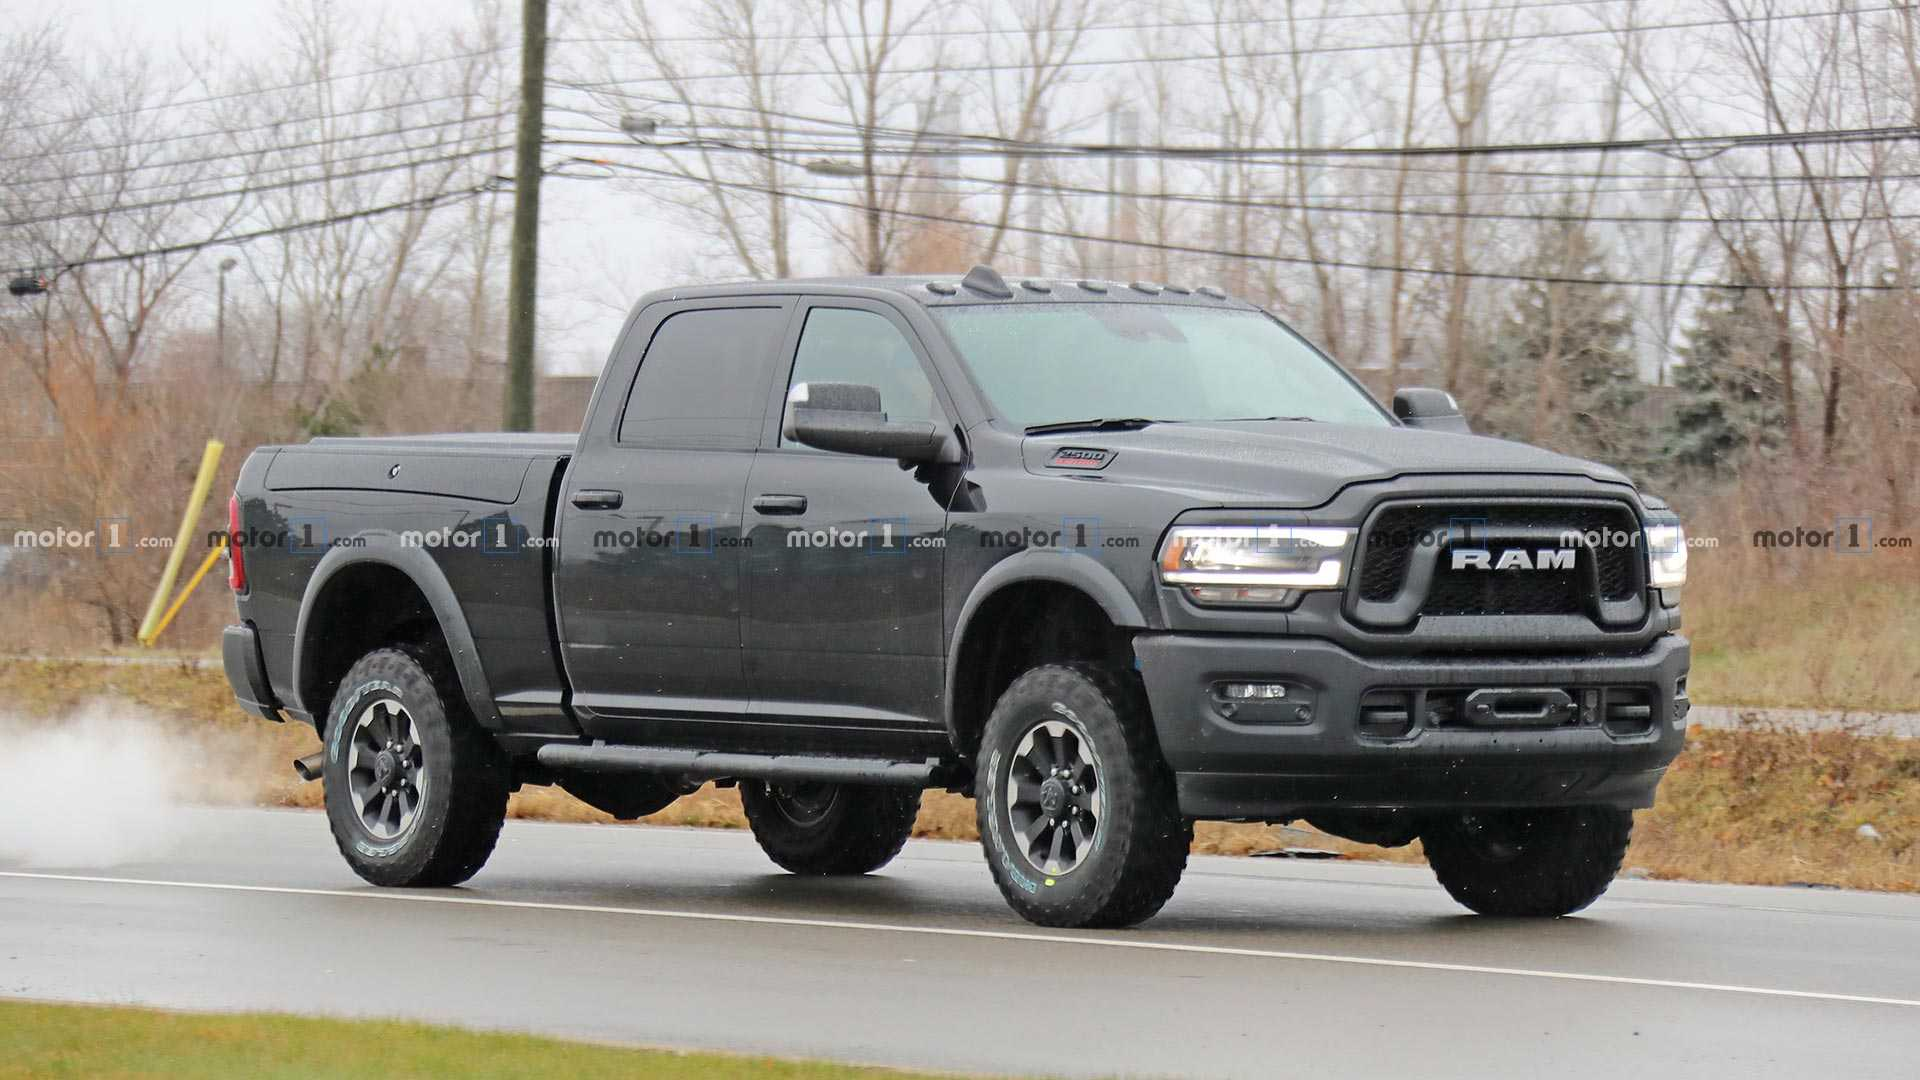 2020 Ram Power Wagon Spied Completely Undisguised